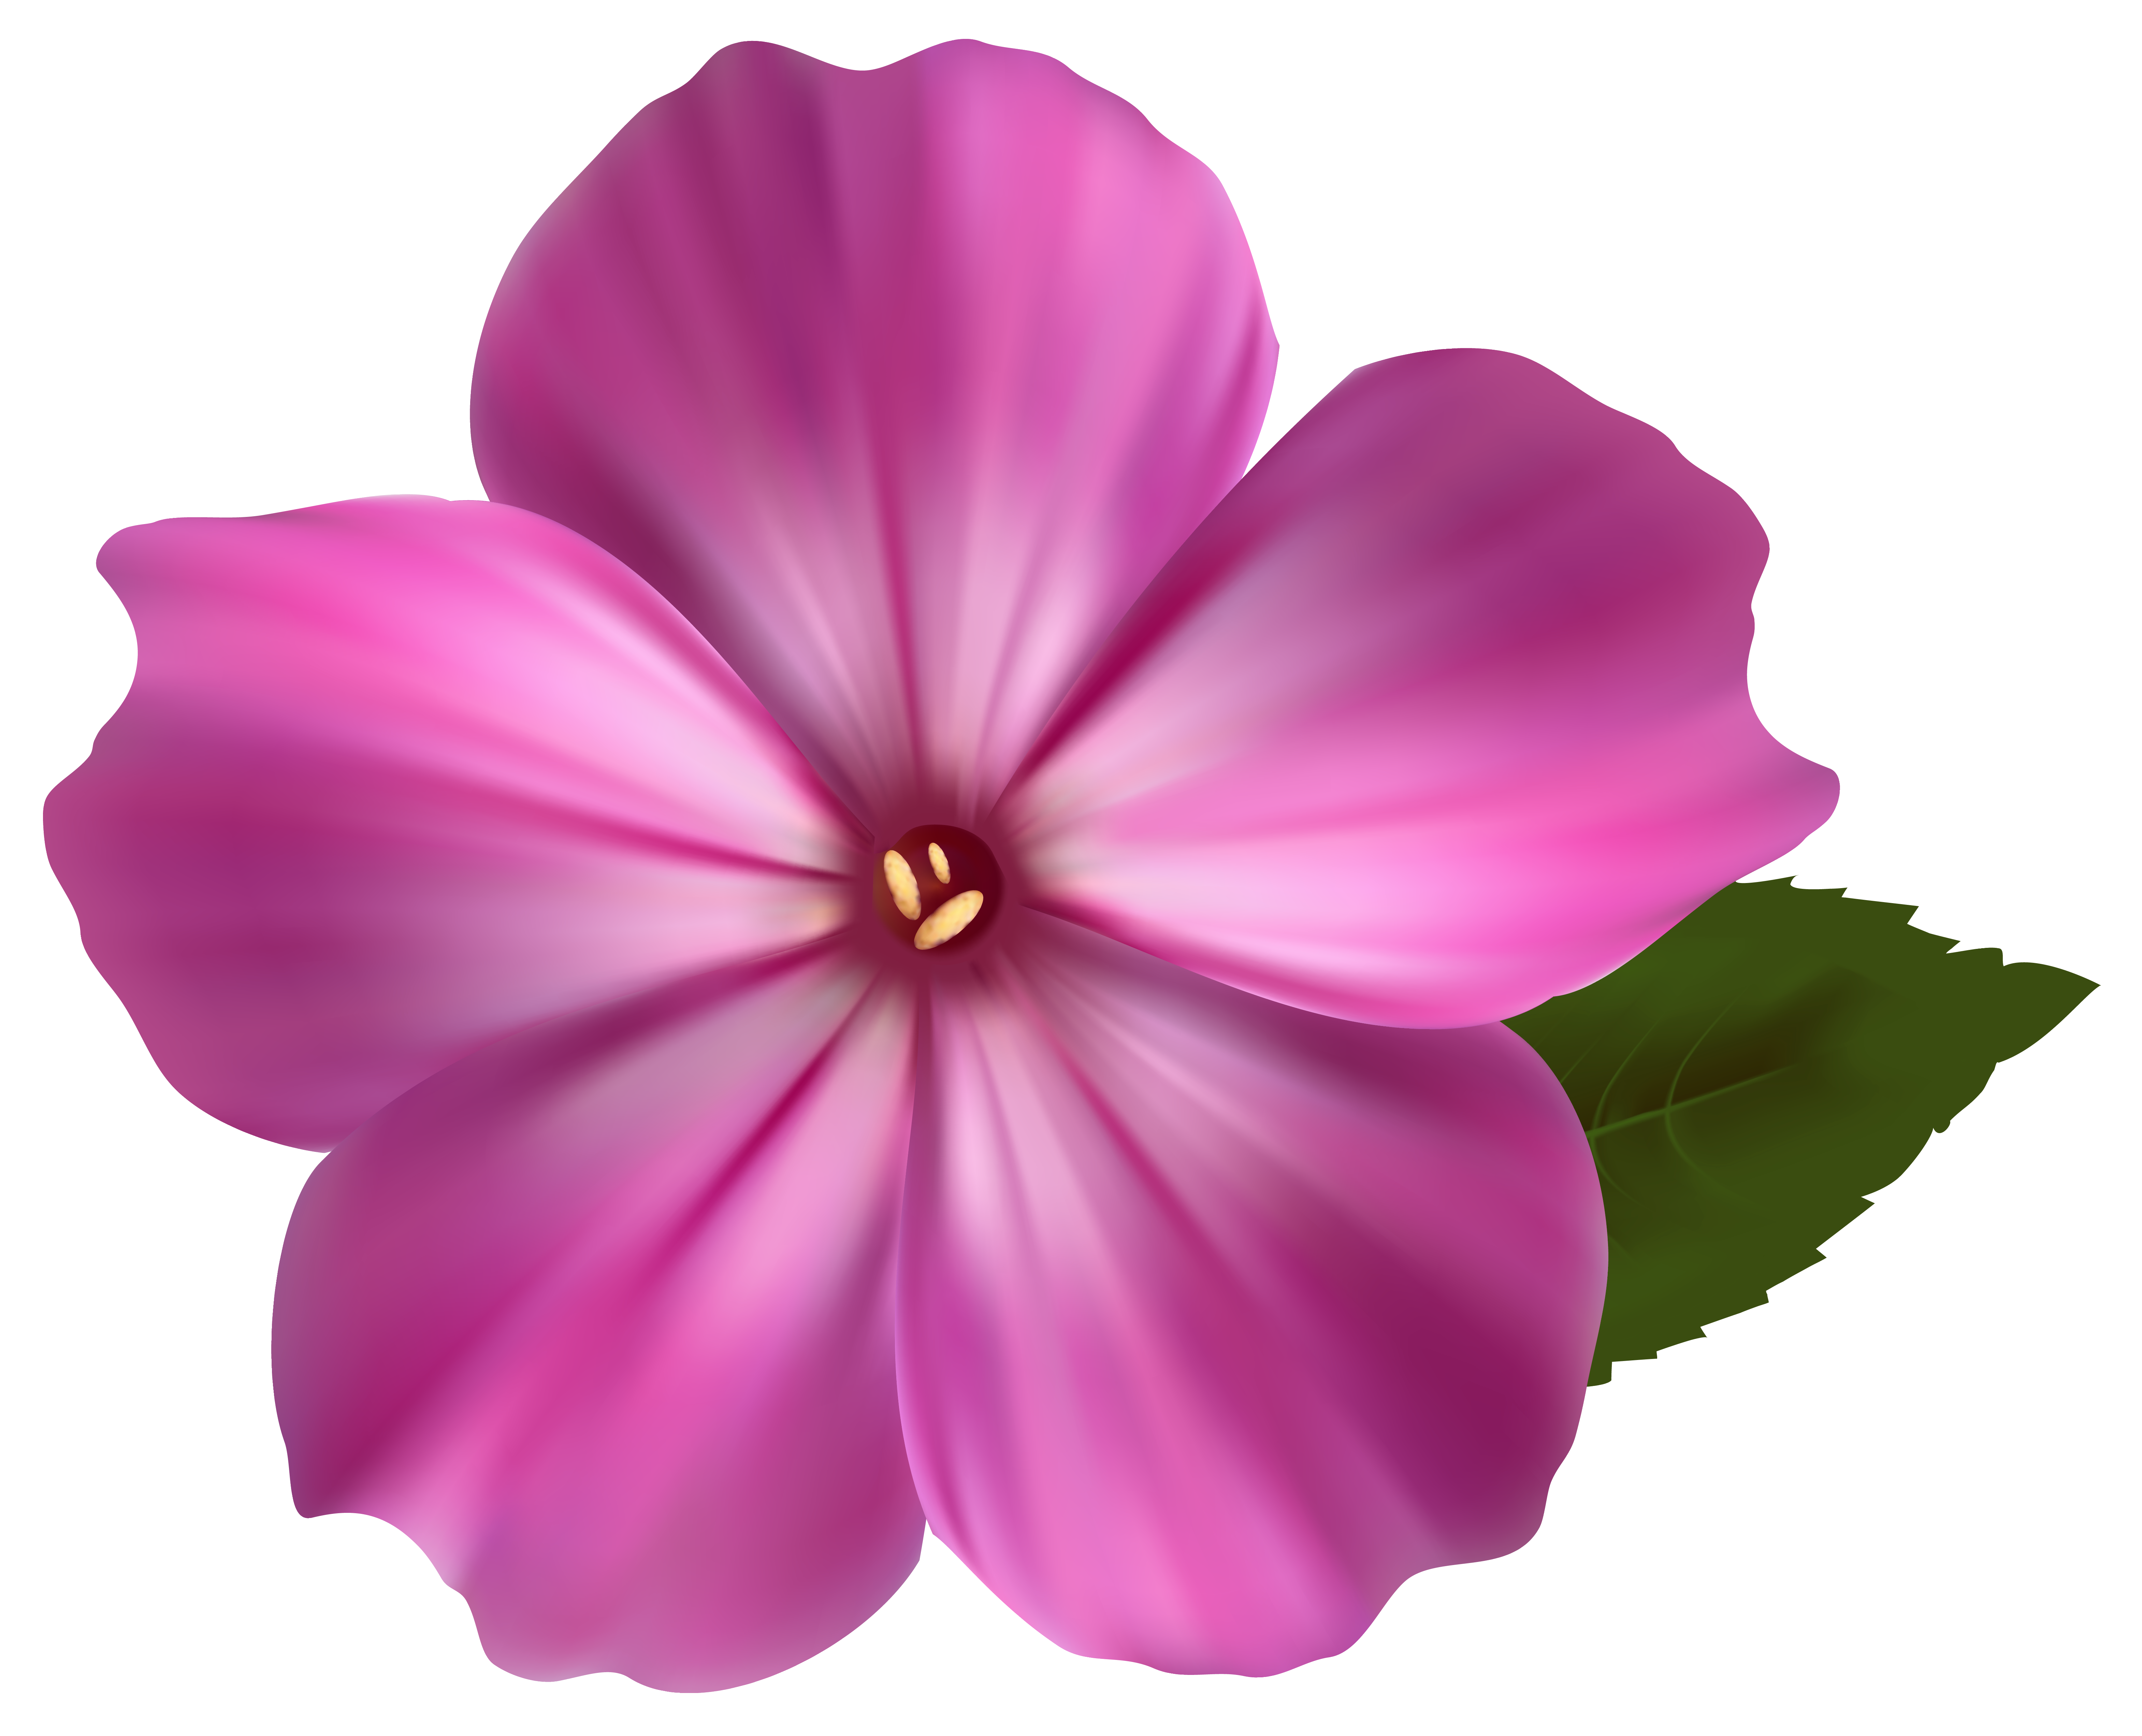 Transparent flower png. Pink clipart image gallery